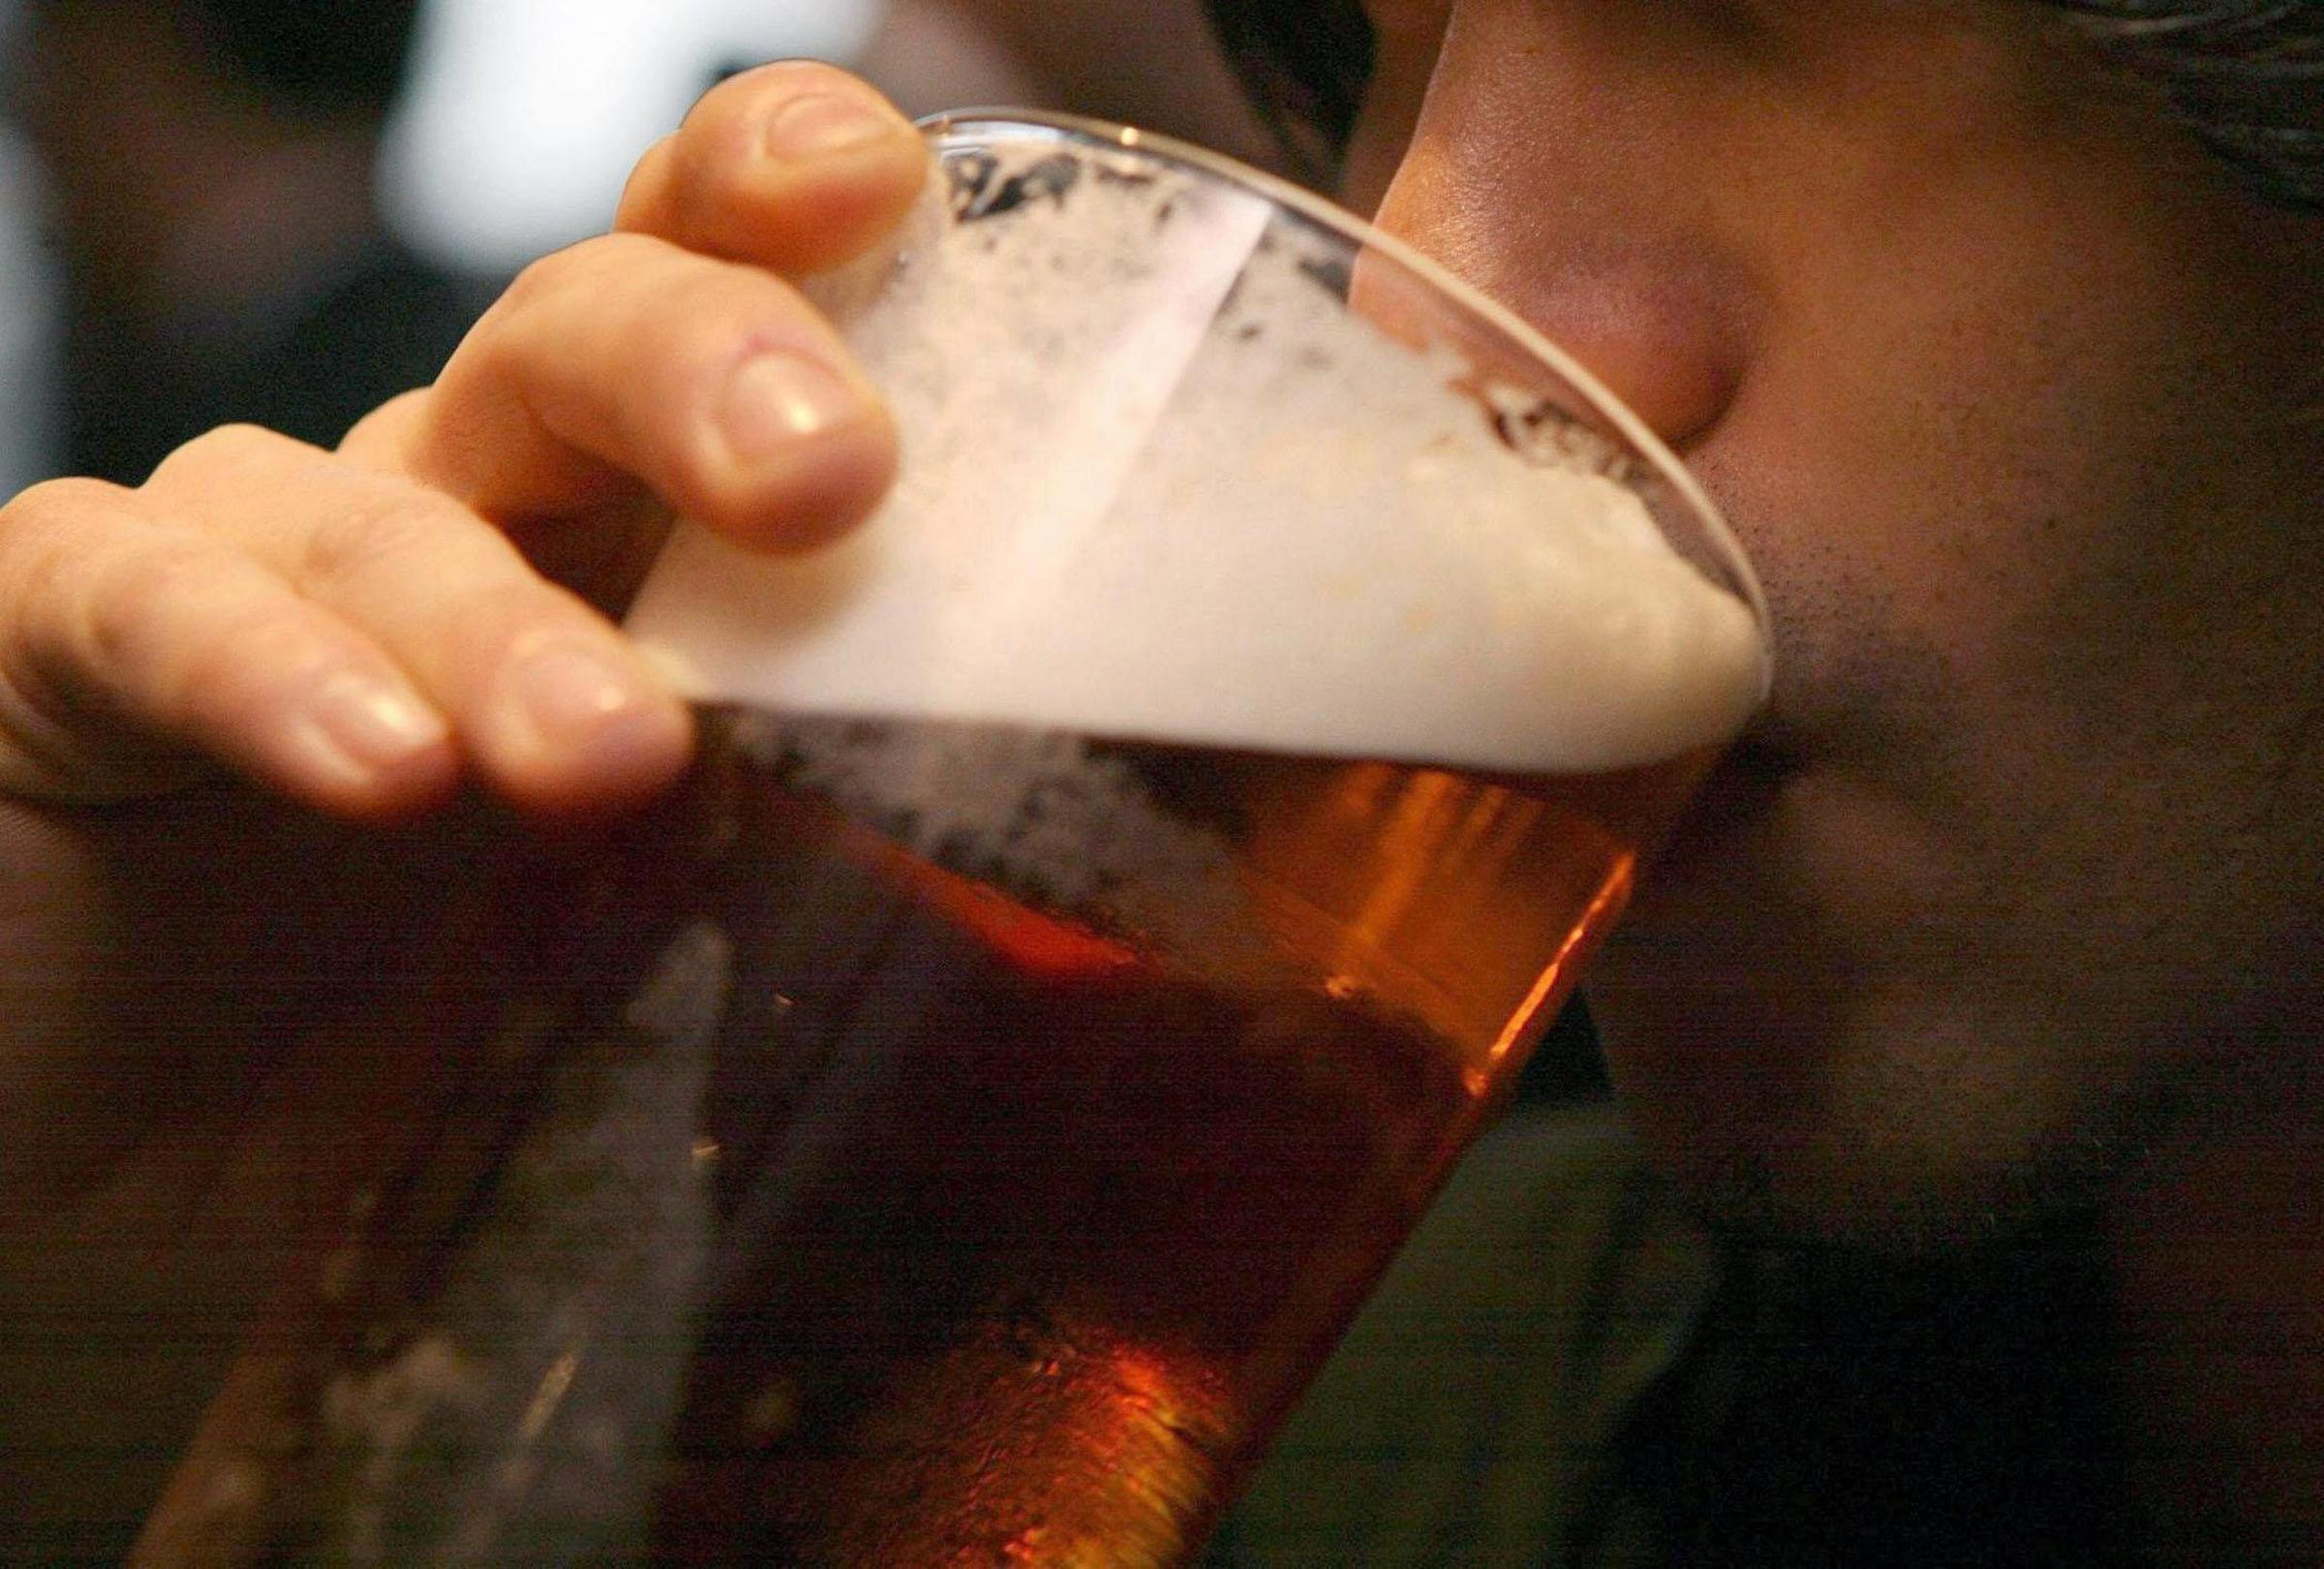 Pub safety scheme launched in Kingswinford and Wordsley